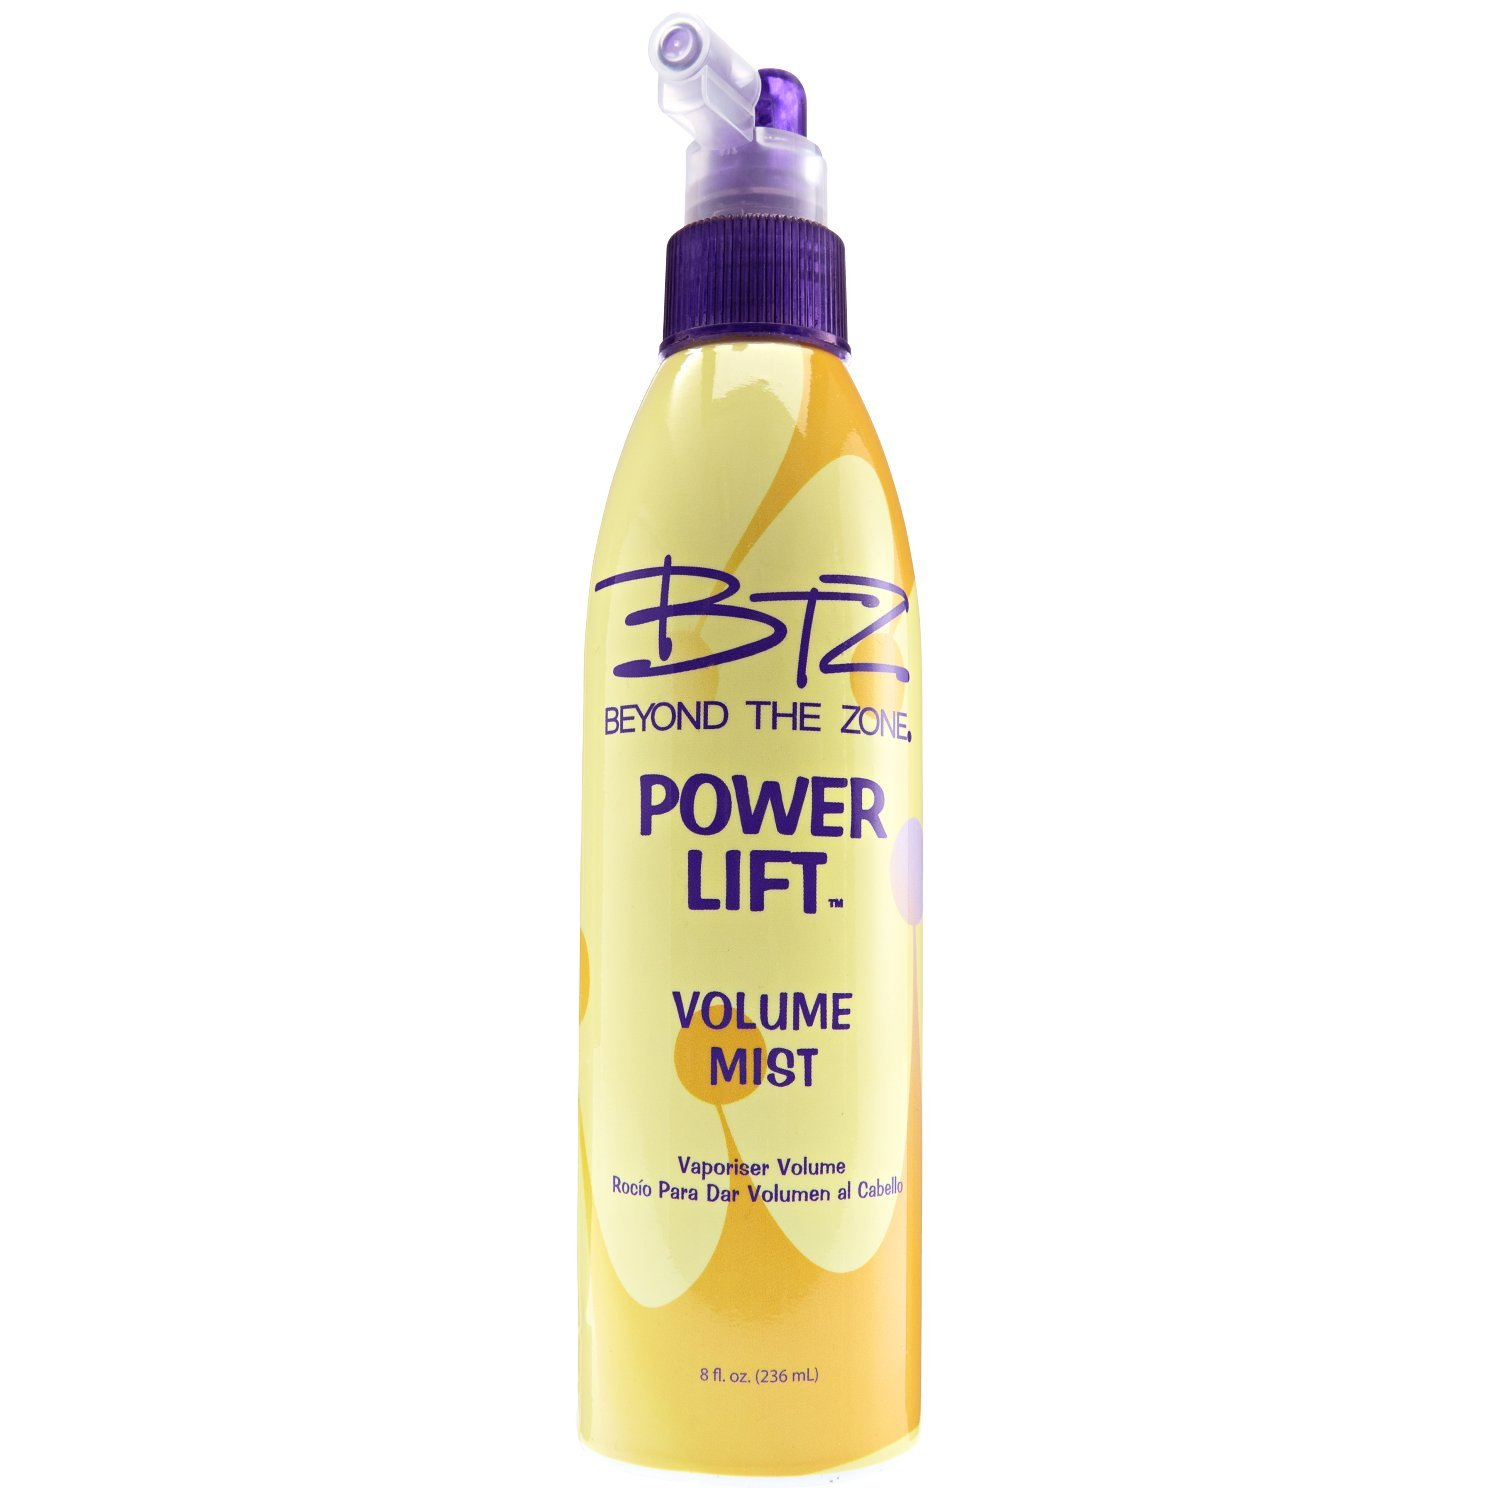 Beyond the Zone Power Lift Volume Mist for cheap